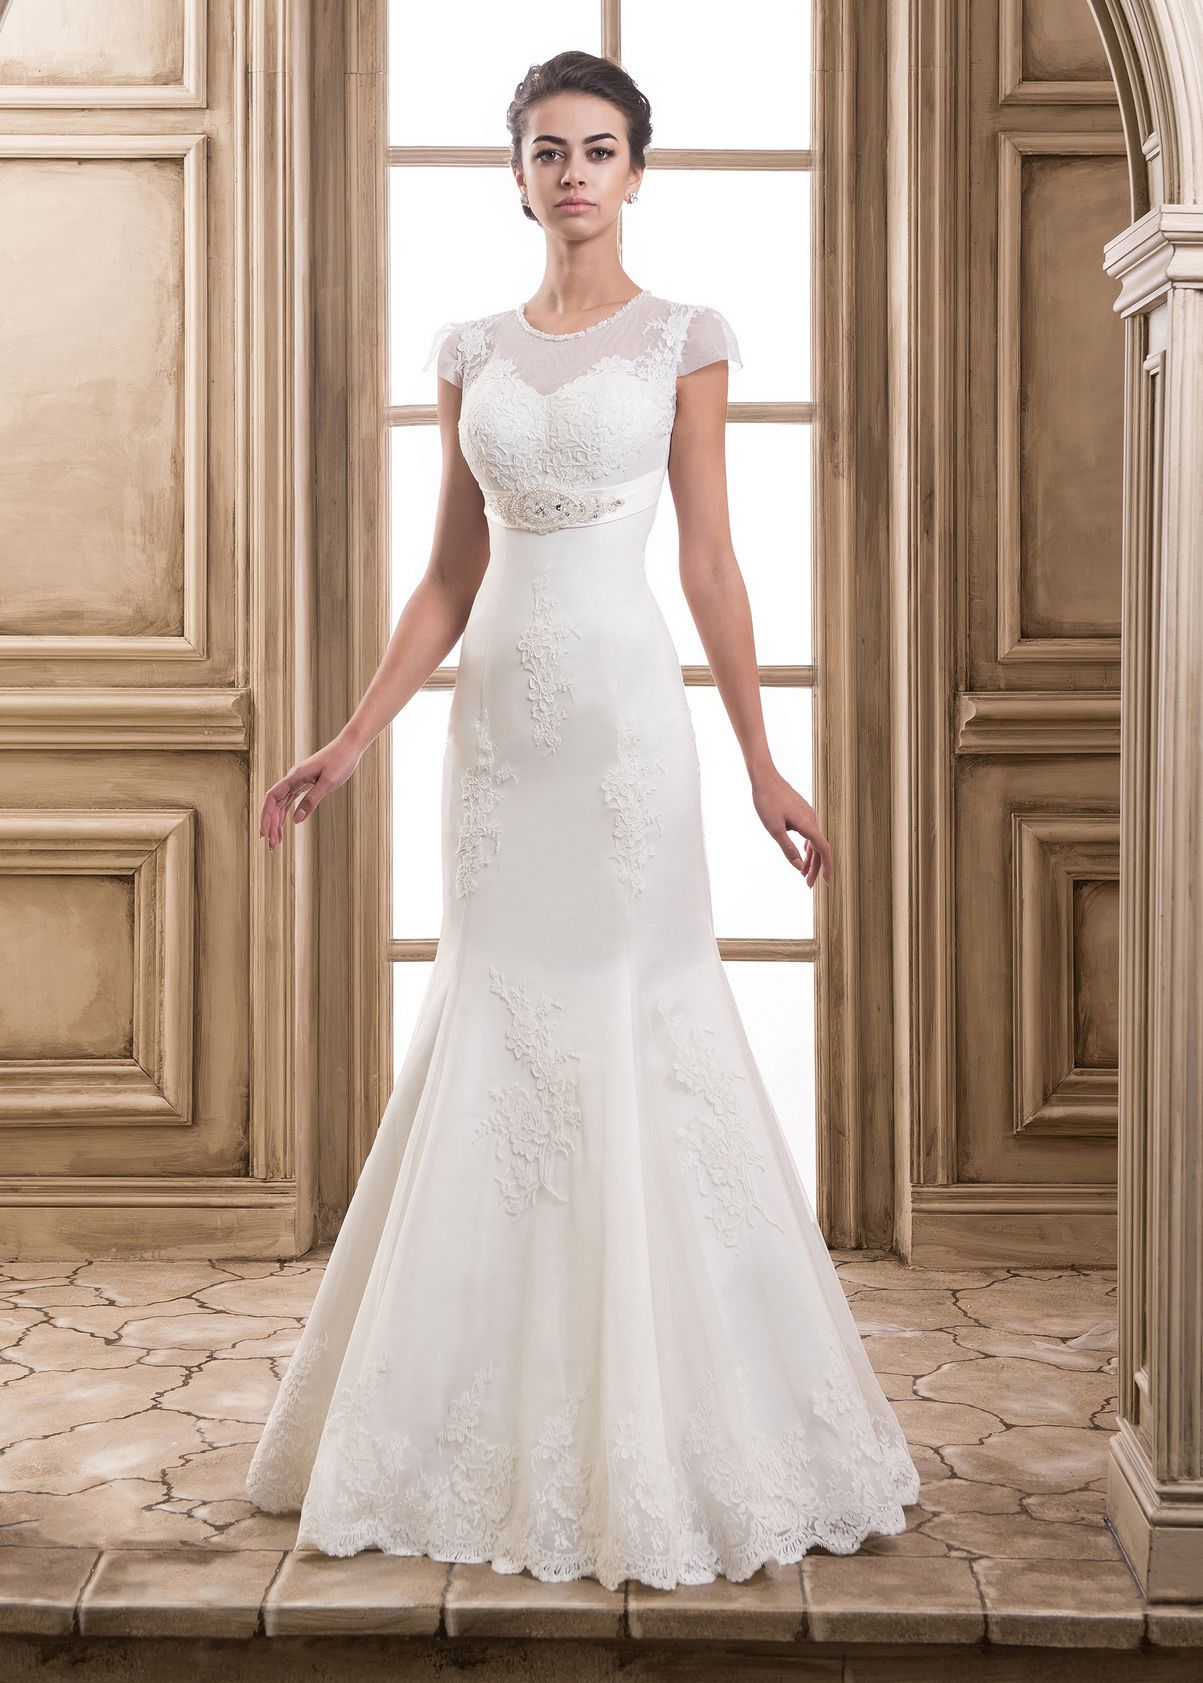 Cap Sleeves Lace Tulle Empire Waist Wedding Dress in 2020